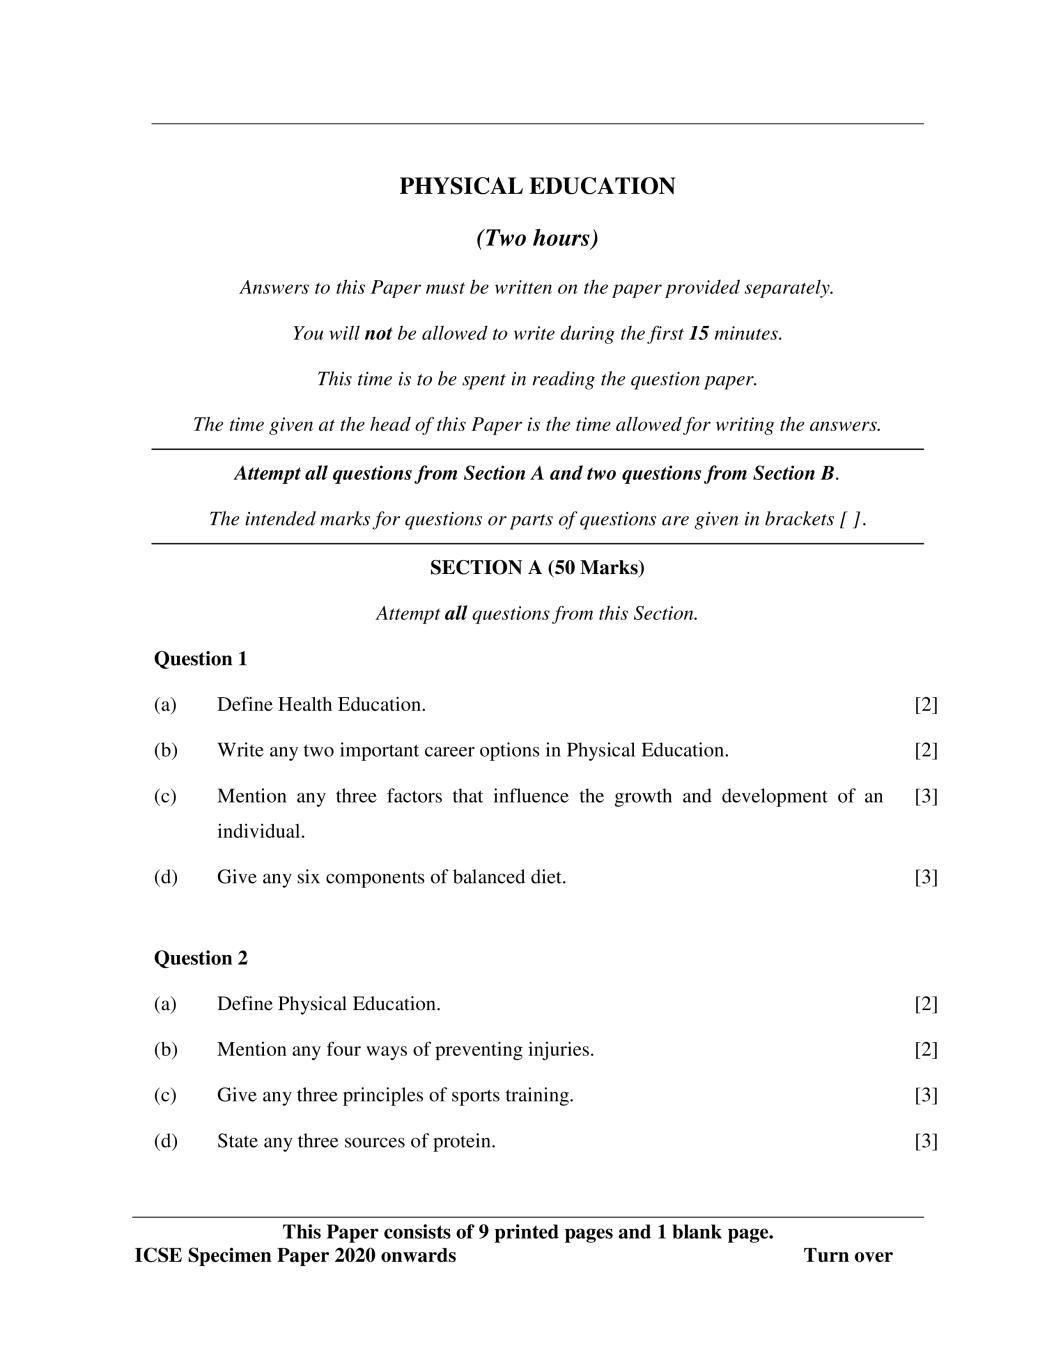 ICSE Class 10 Physical Education Sample Paper 2020 - 2021